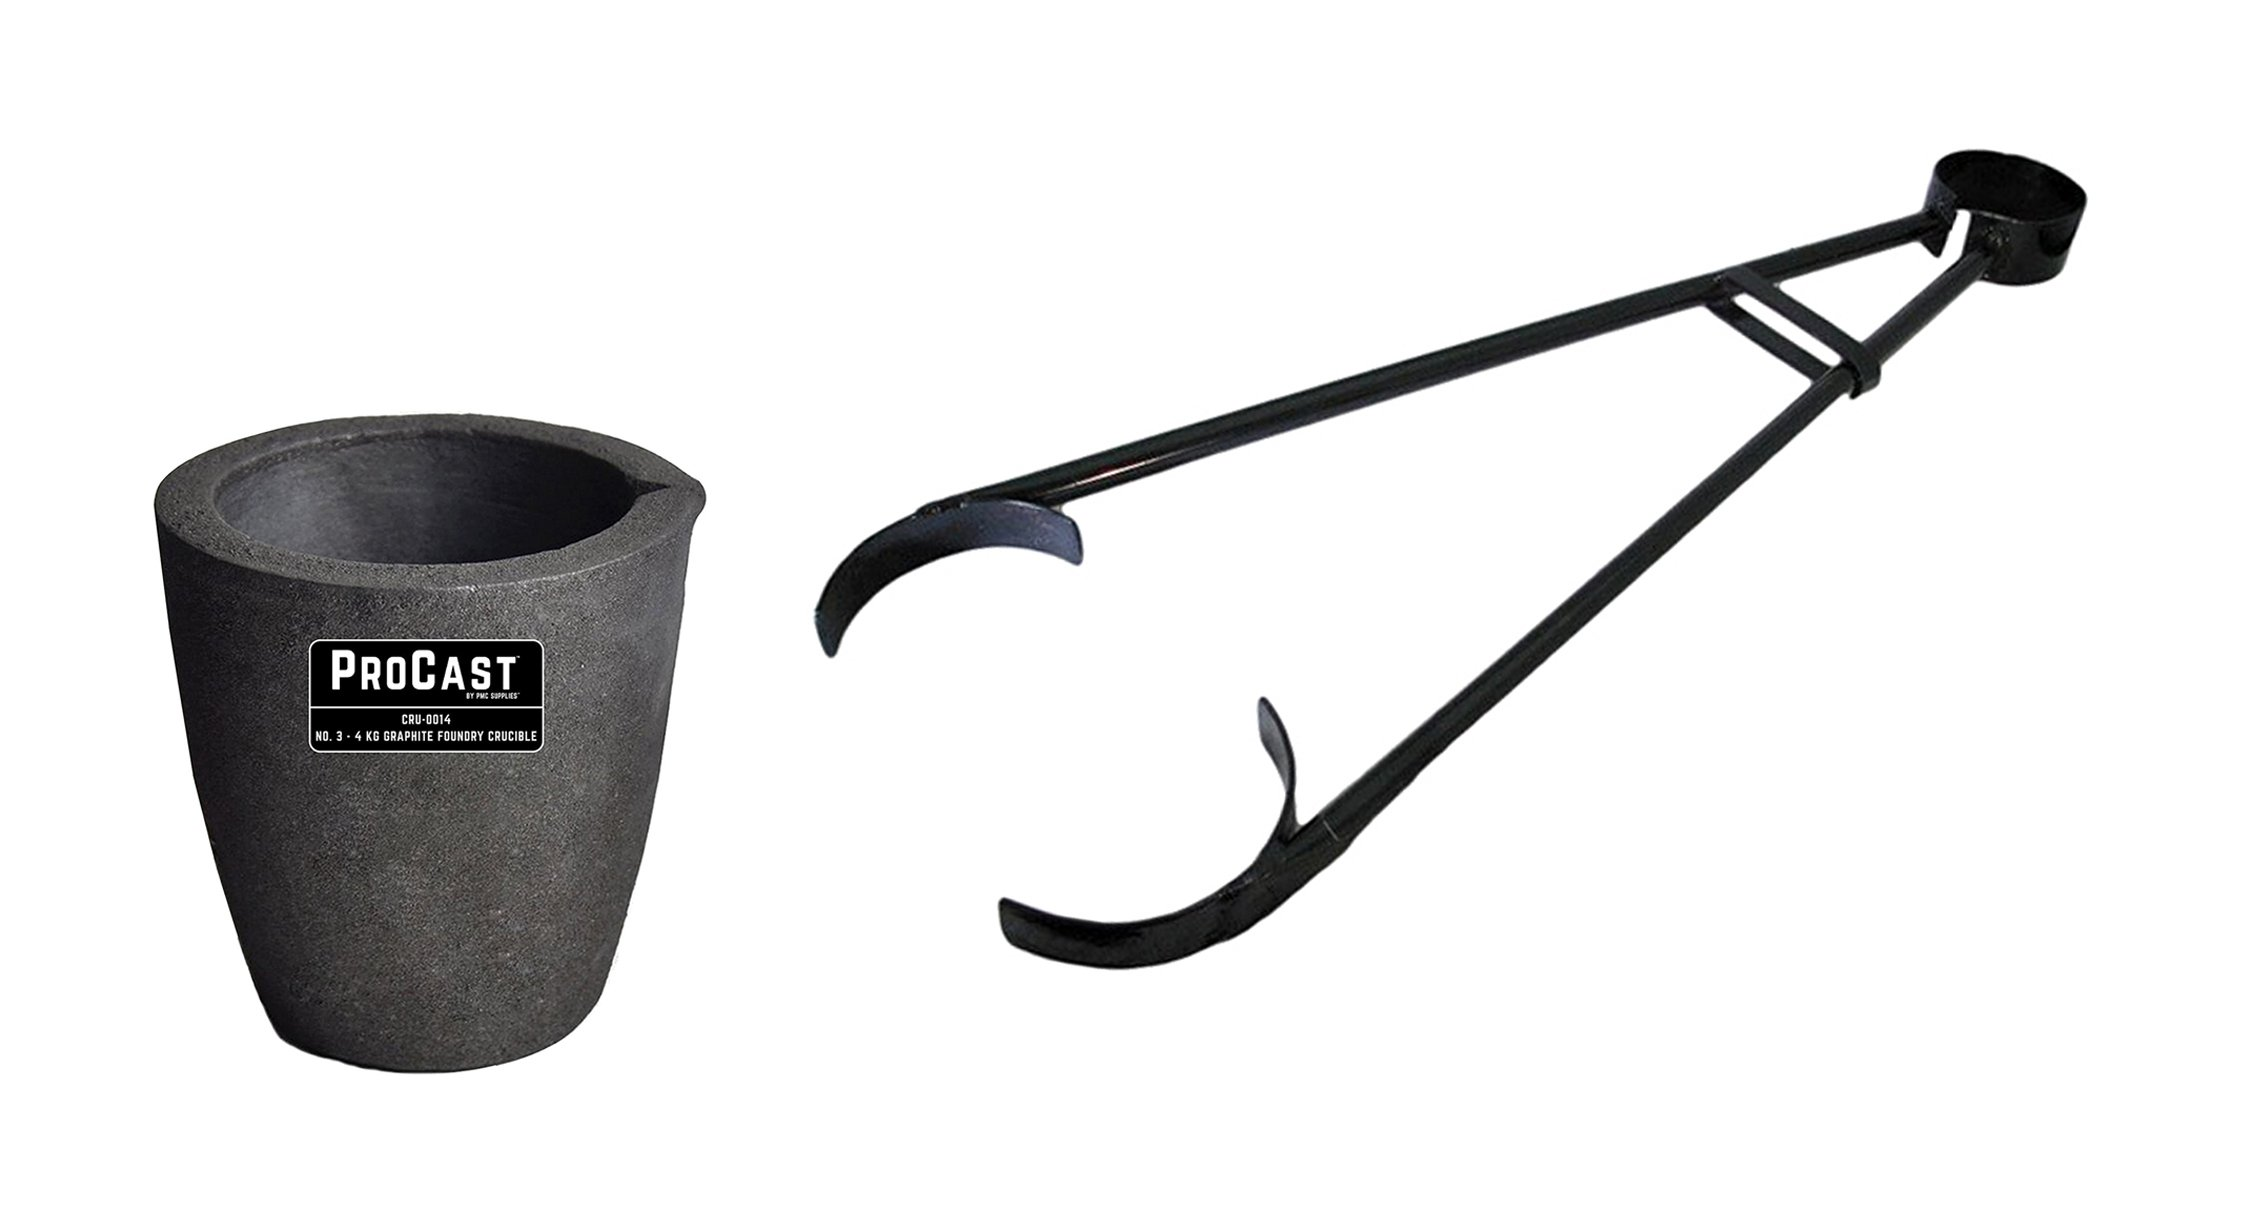 #3-4 Kg Clay Graphite Foundry Crucible Kit w/ 26'' Foundry Crucible Flask Tongs Gold Silver Metal Refining Casting Tool by PMC Supplies LLC